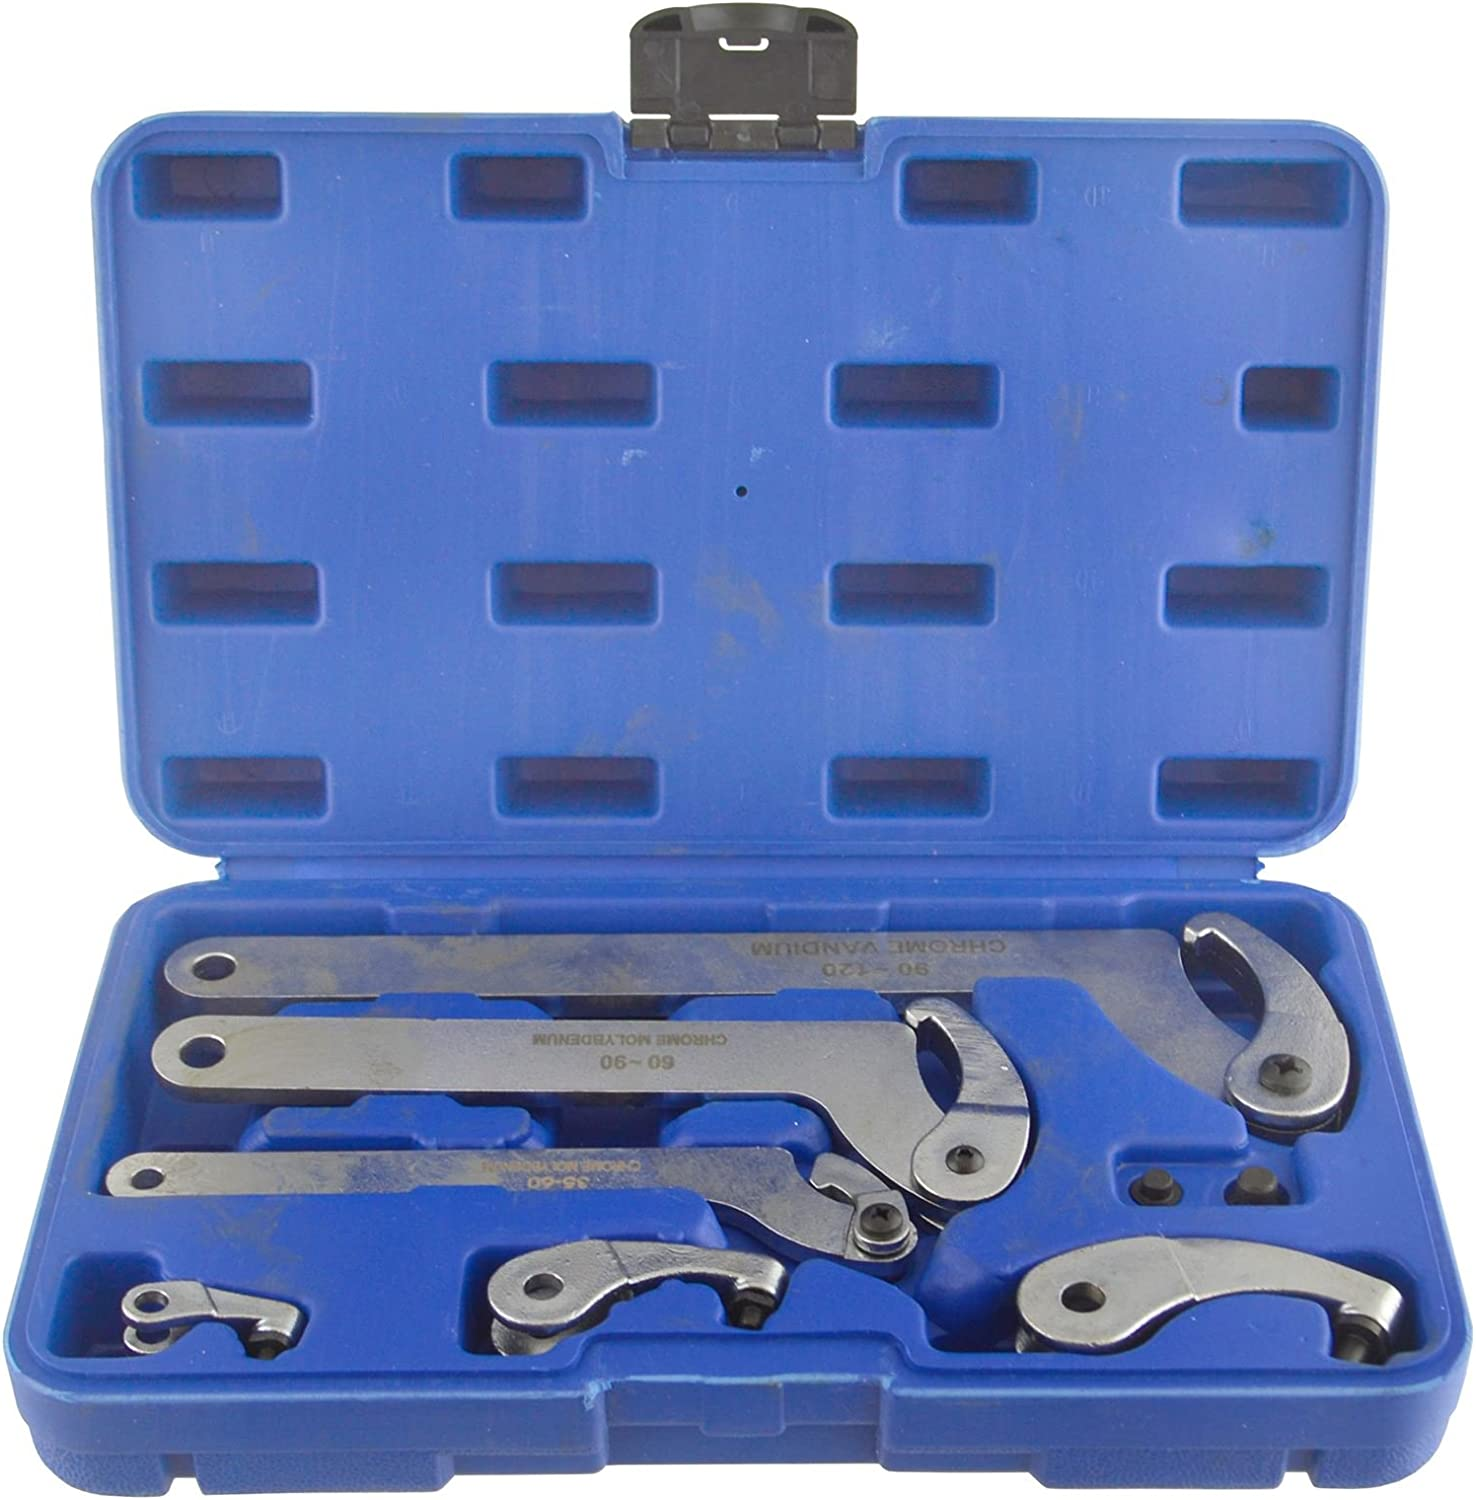 Adjustable Hook And Pin Wrench Spanners - 6 120mm C Louisville-Jefferson County High quality Mall Spanner 35mm